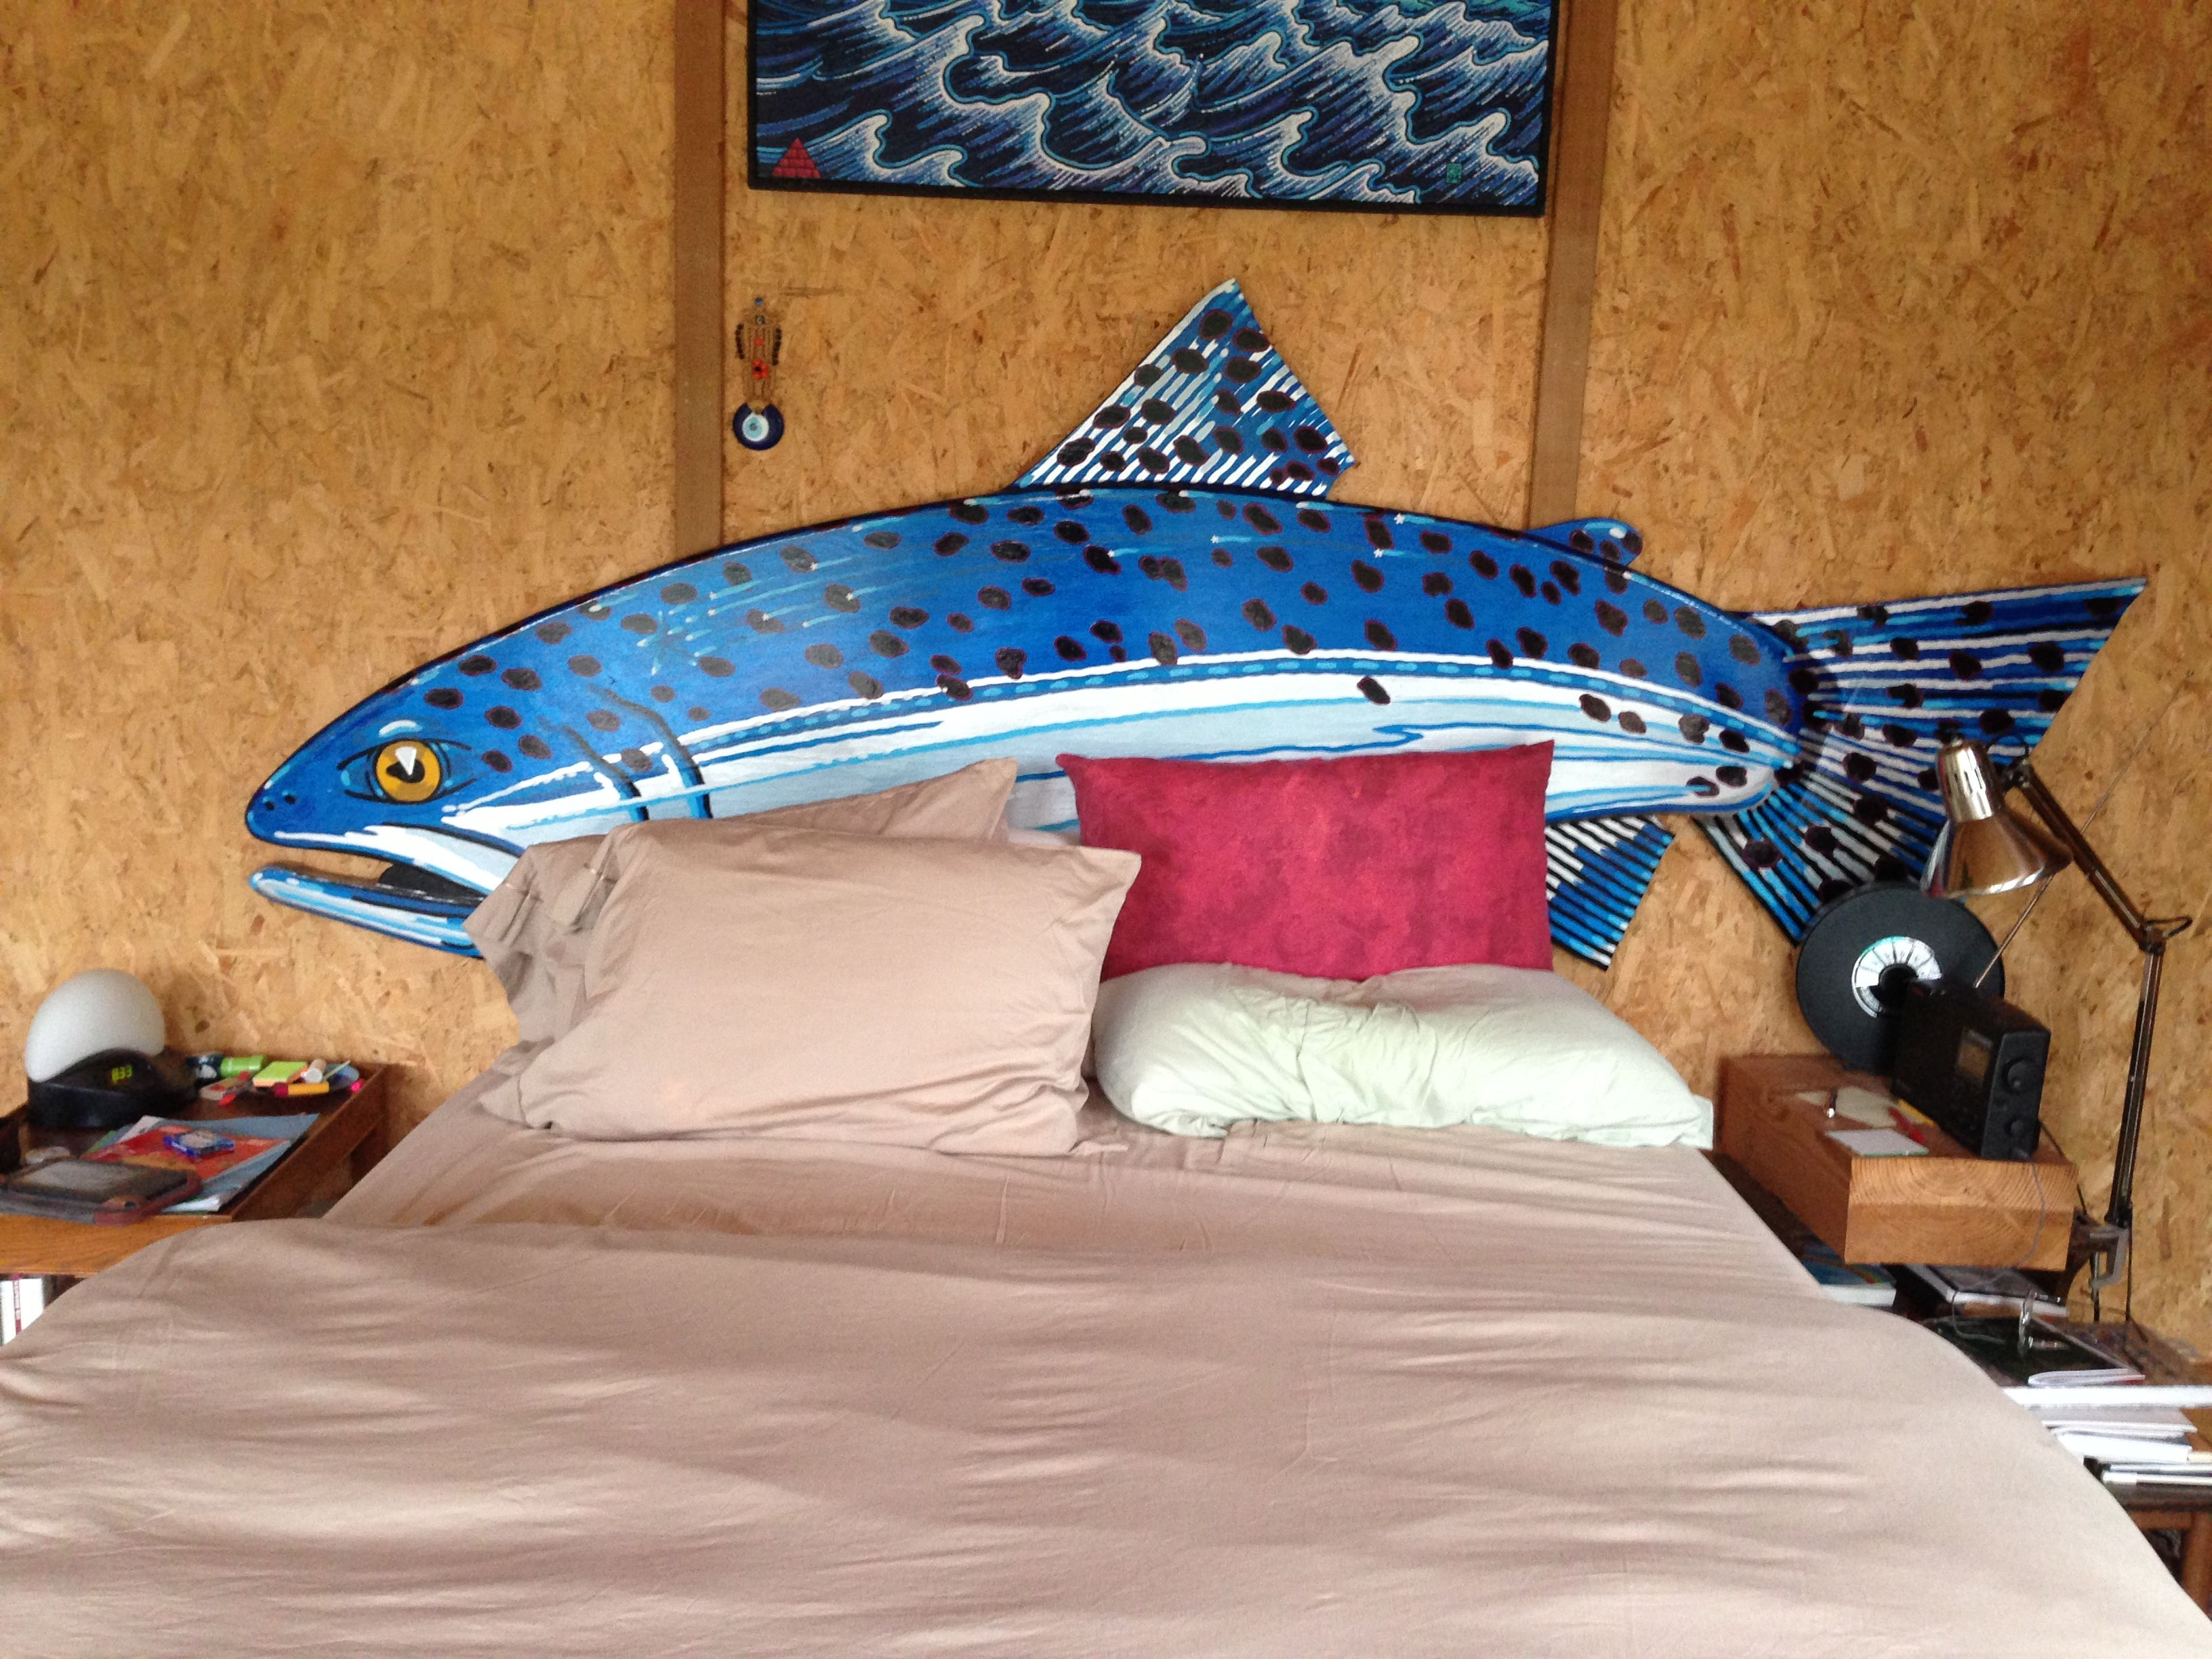 We commissioned the headboard from artist Frank Samuelson